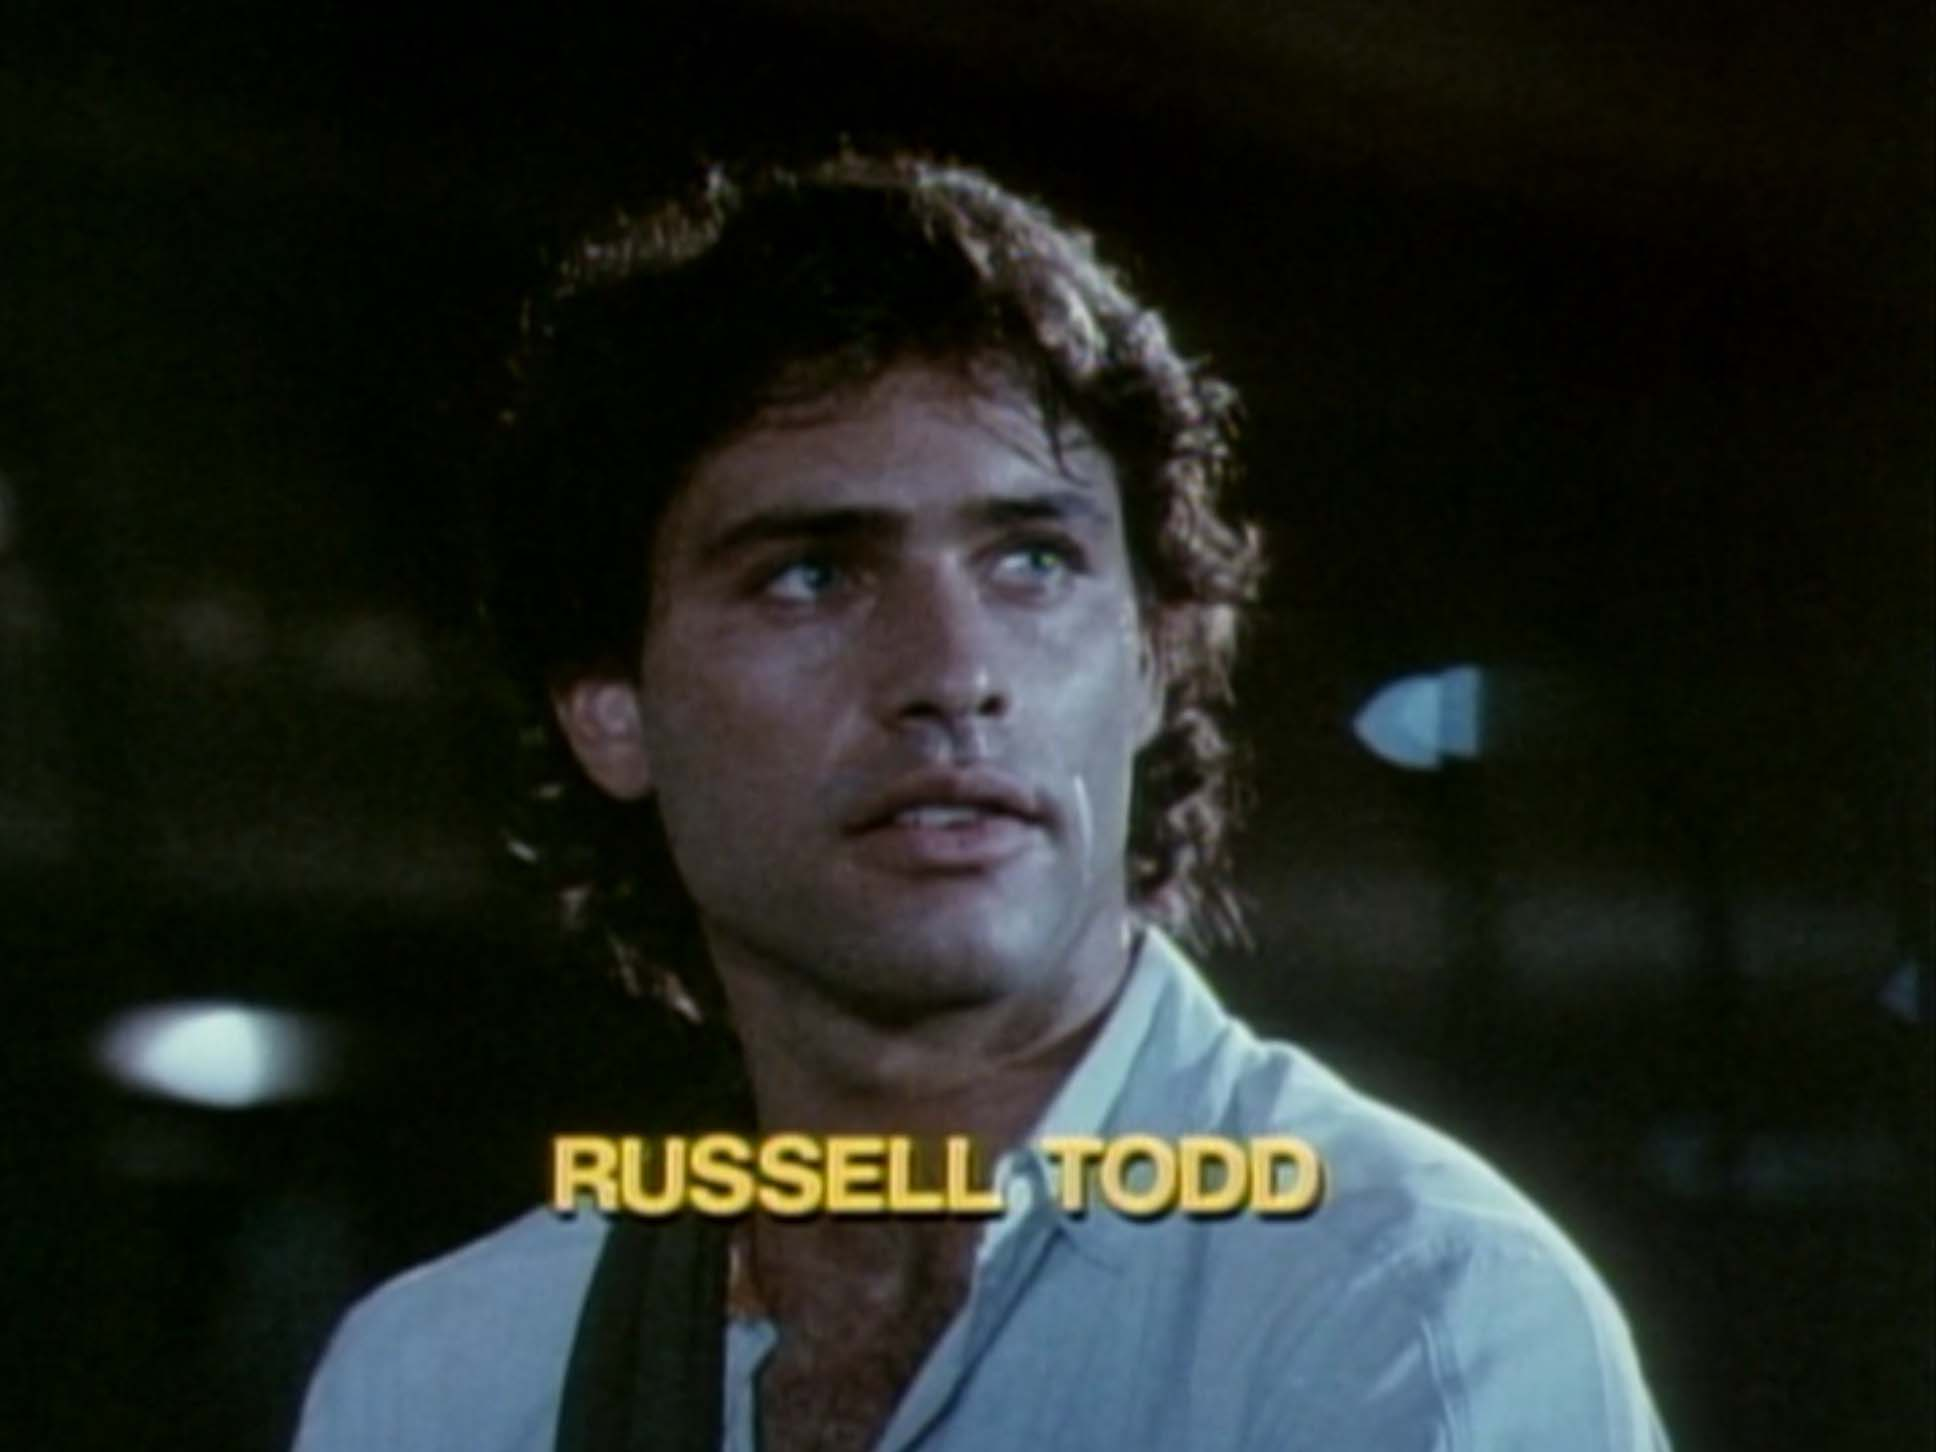 Russell Todd in Chopping Mall (1986)